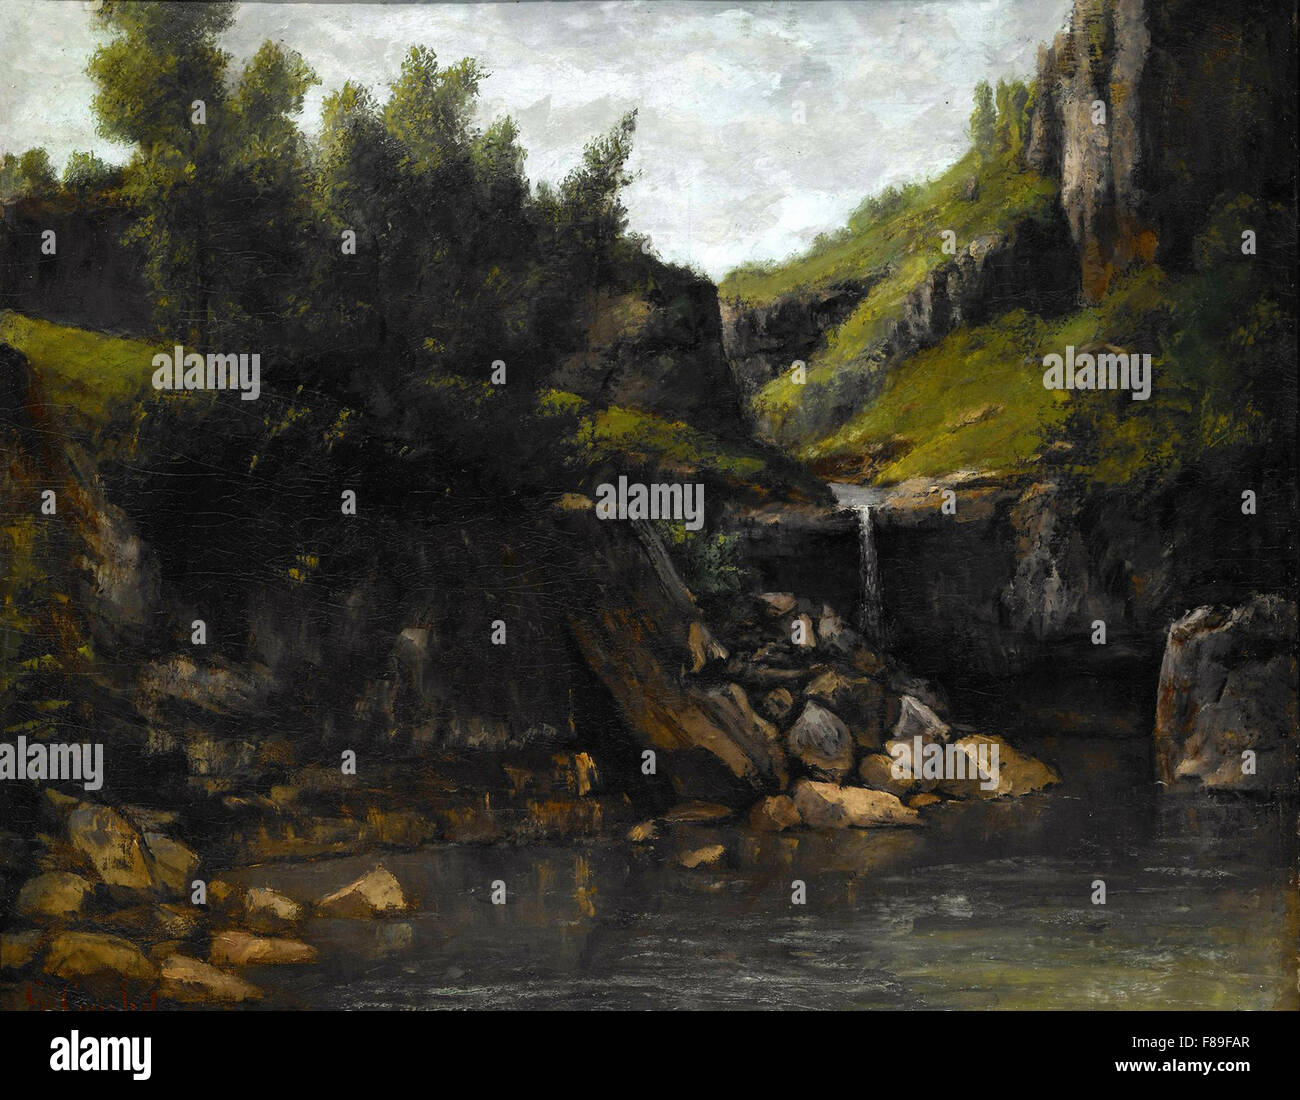 Gustave Courbet - Cascade in a Rocky Landscape - Stock Image